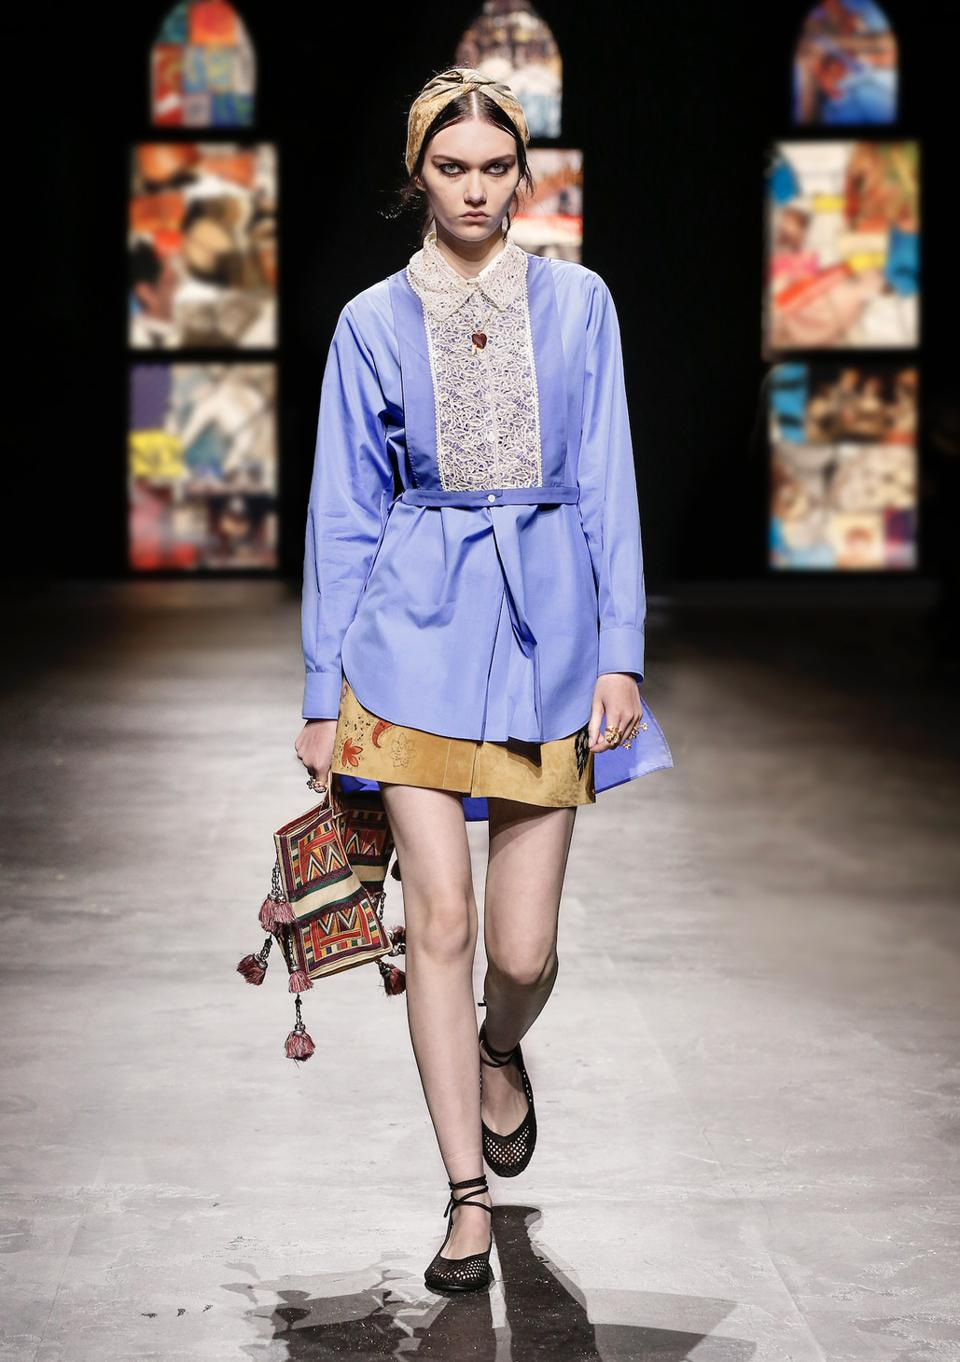 Dior Summer 2021 Look 42  Blue Cotton Poplin Plastron Shirt - $1,900  Blue Cotton Poplin Long Blouse - $1,700  Suede Skirt -$3,600  Yellow Multicolor Dior Paisley Embroidery D-Bubble Bucket Bag - $3,600  Black Mesh Embroidery Dior Poème Laced Ballerina Flat - $1,150  Multicolor Silk and Cotton Dior Patchwork Oeillets Square Scarf - $520